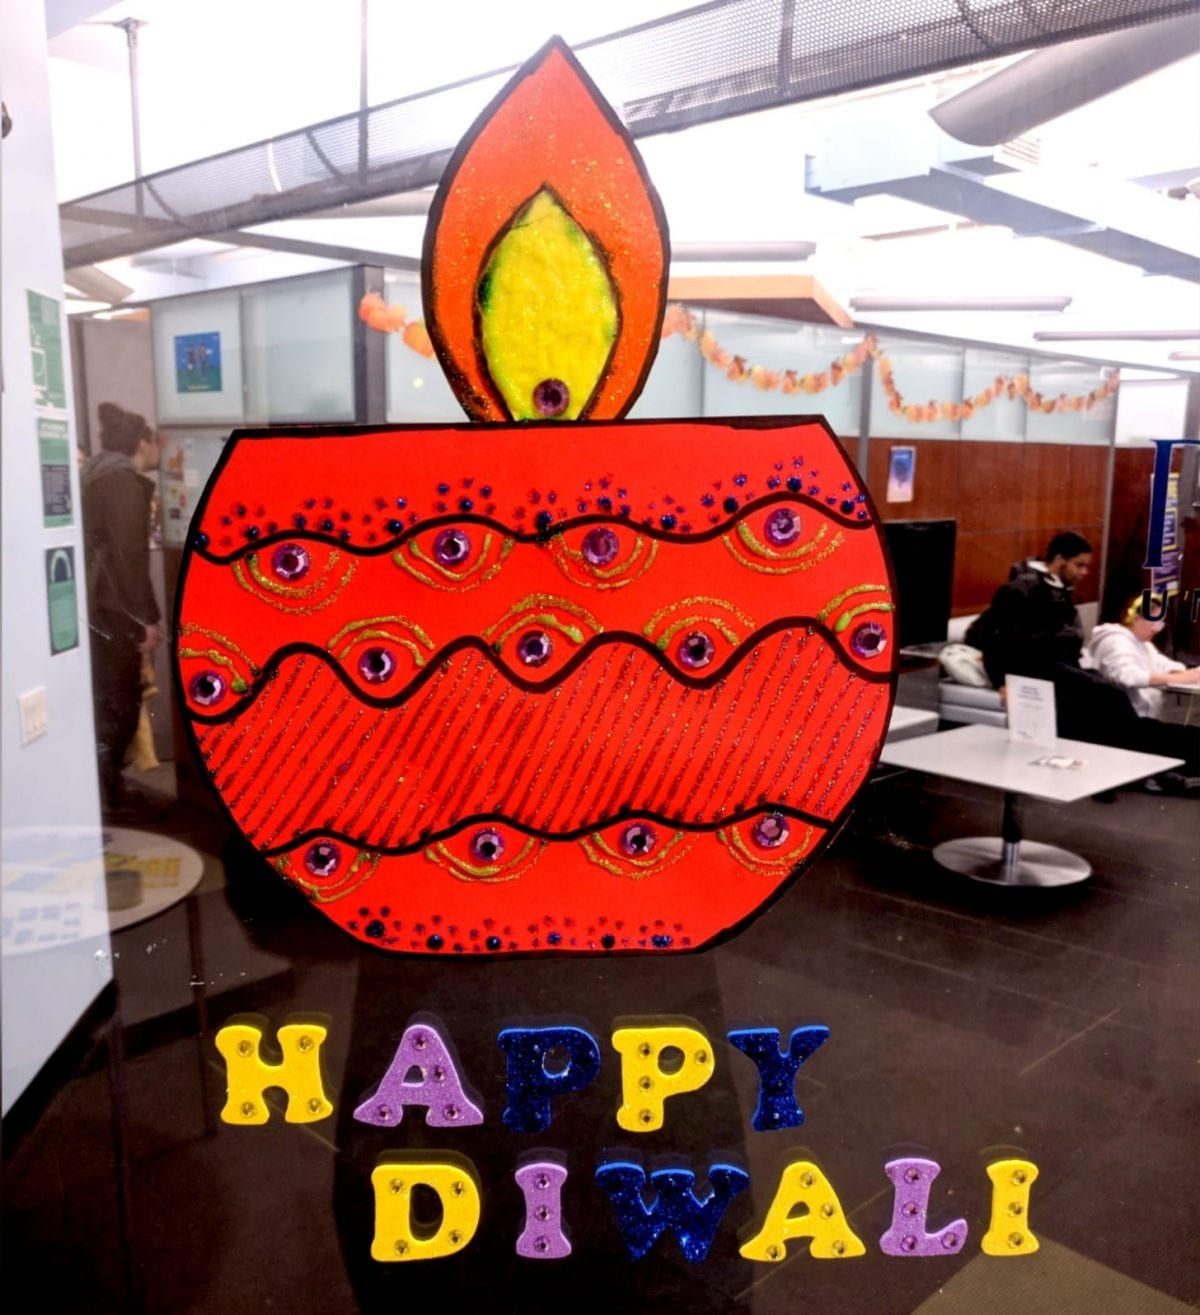 Diwali Celebration at Seidenberg School!